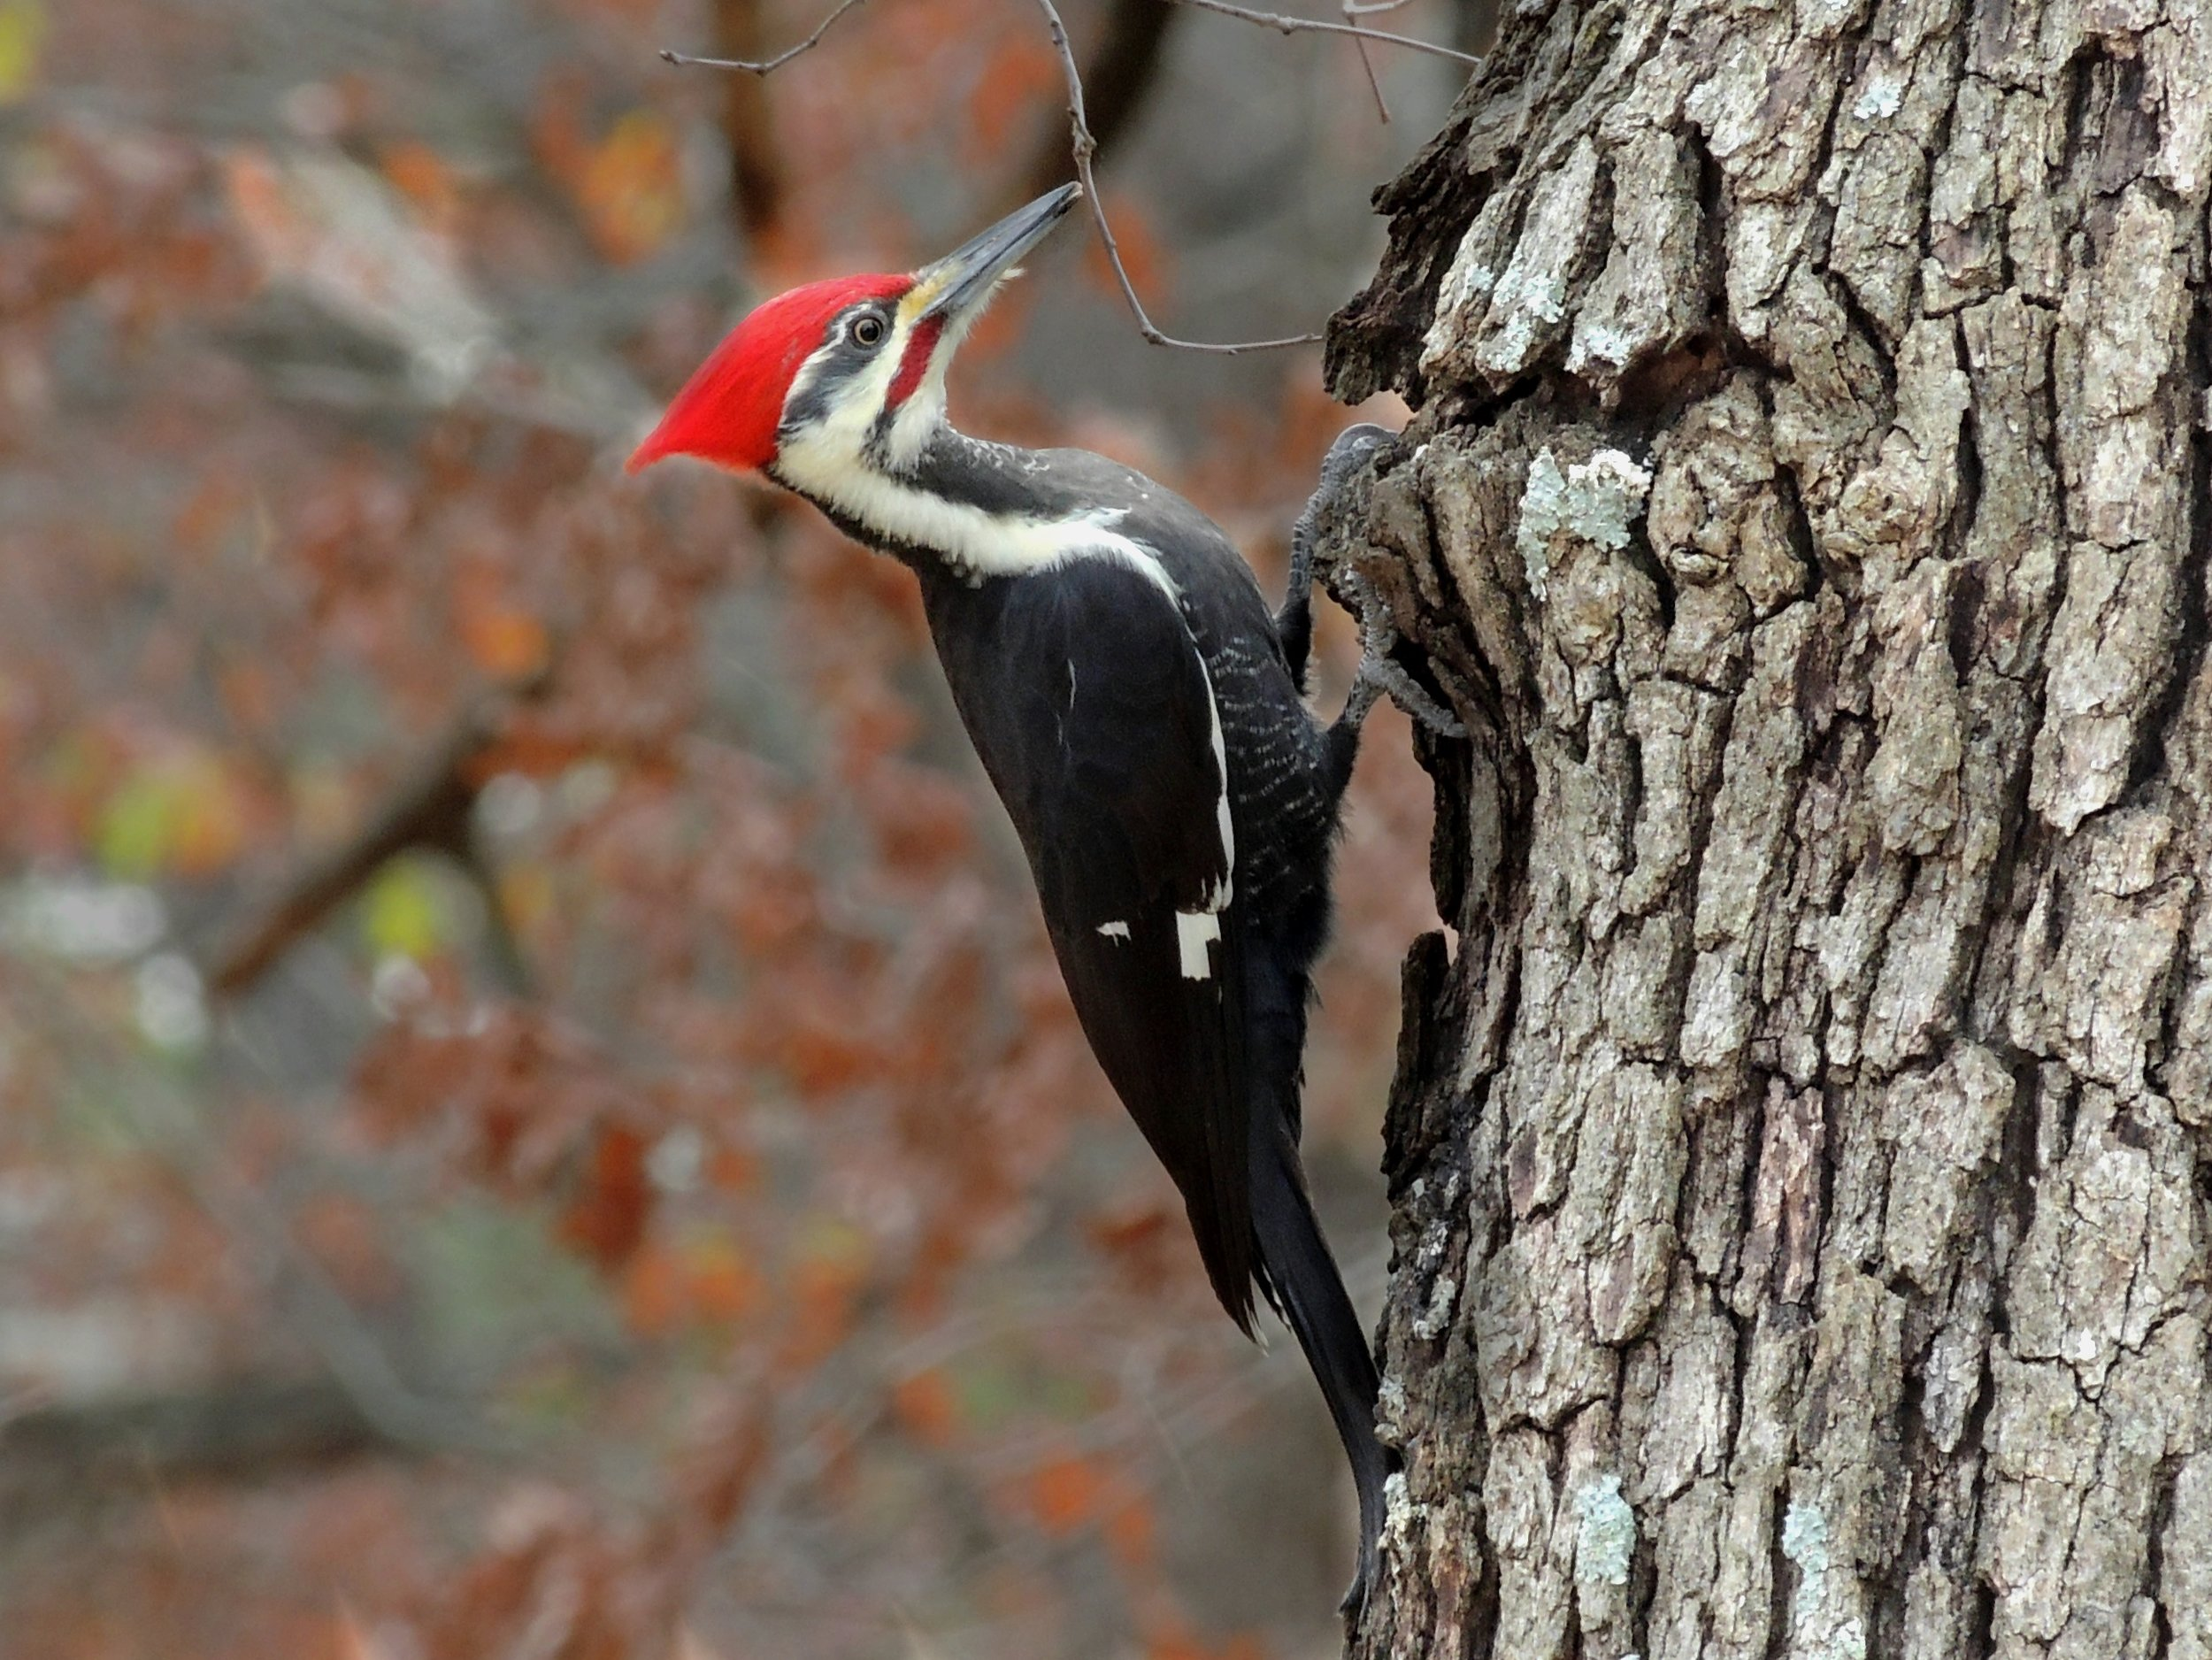 Pileated Woodpeckers  often sound like a hammer hitting a tree when searching for food.  They can be found in Witherspoon Woods in large, dead trees.